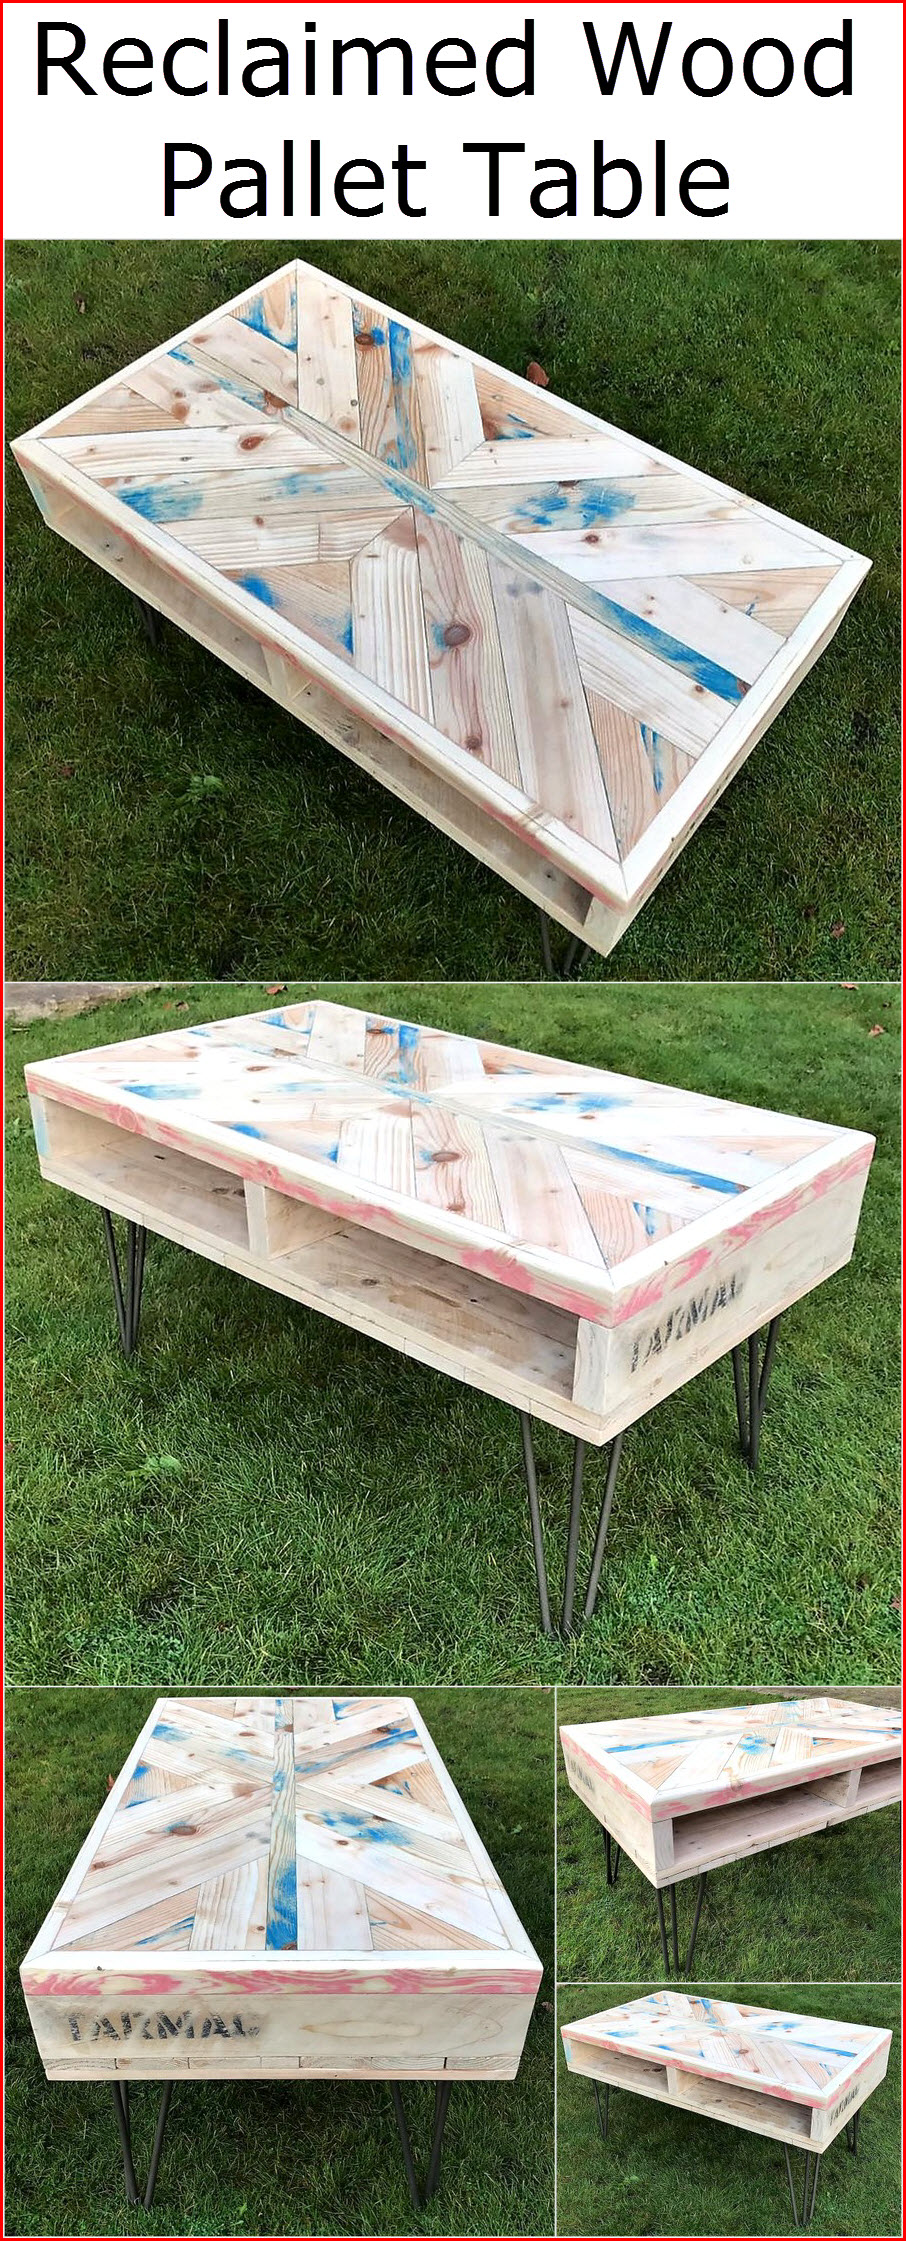 reclaimed wood pallet bench. Reclaimed-wood-pallet-table Reclaimed Wood Pallet Bench